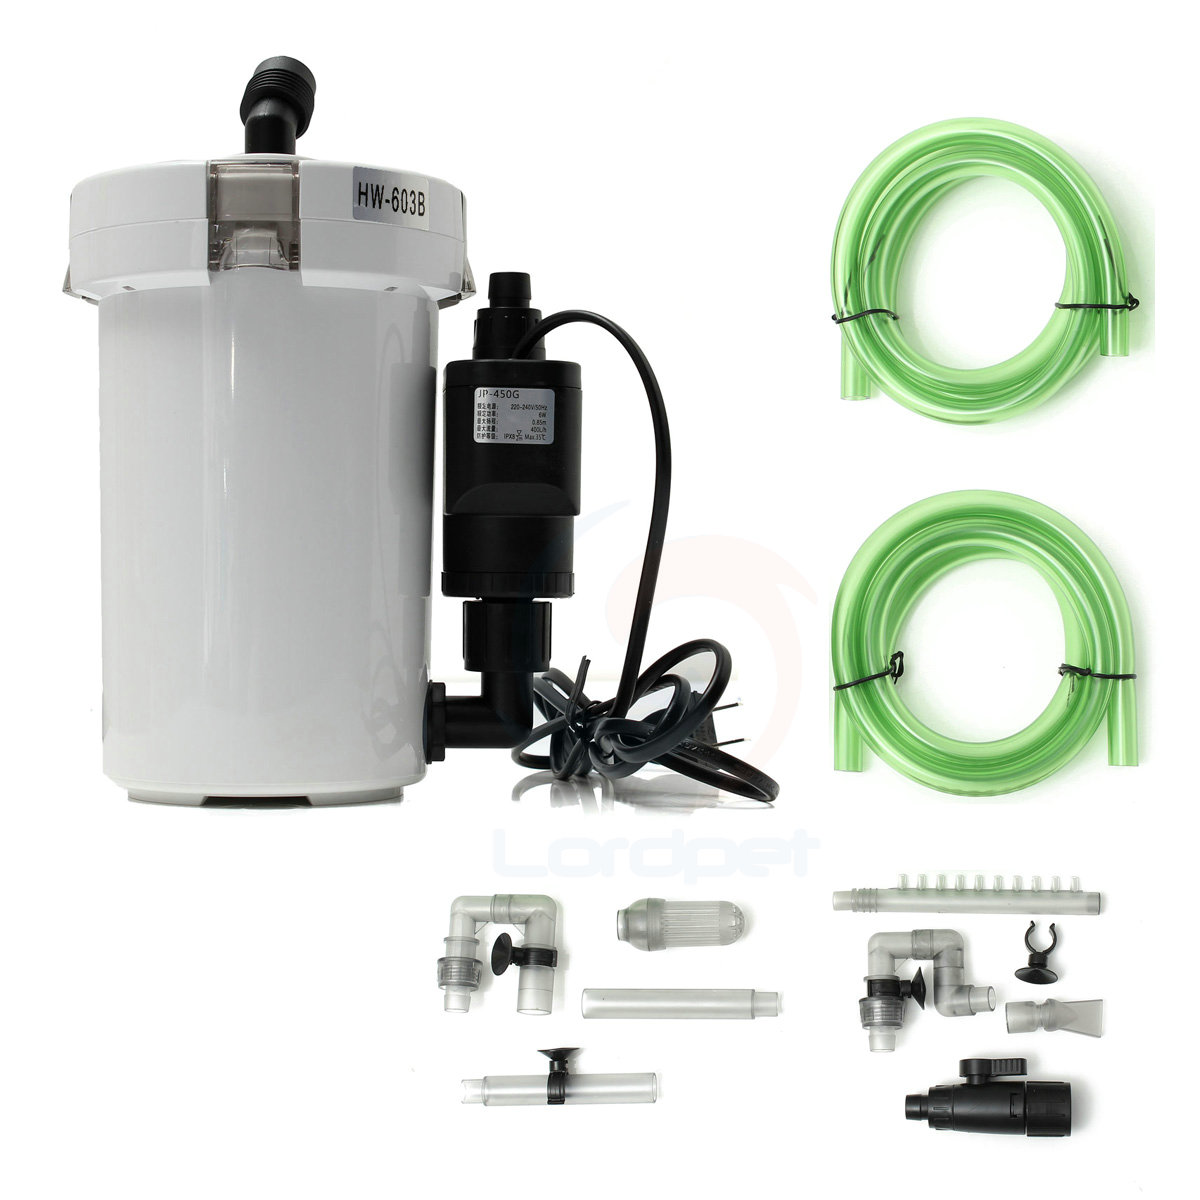 Sunsun brand new hw 603b l 6w external canister filter for Outdoor fish tank filter